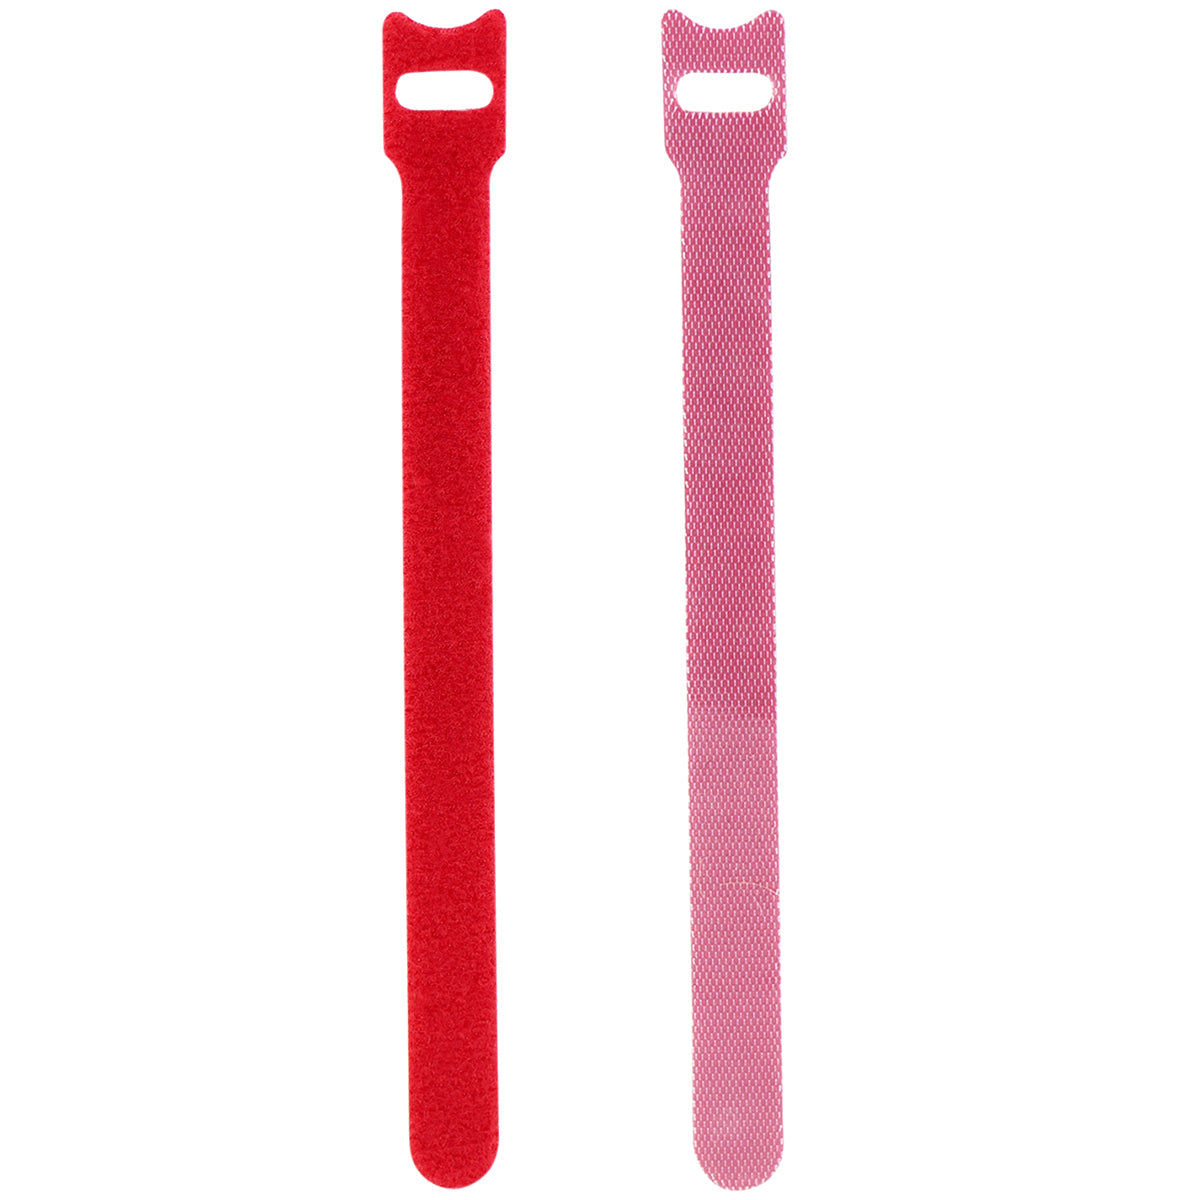 Displaying of two upright red nylon cable ties